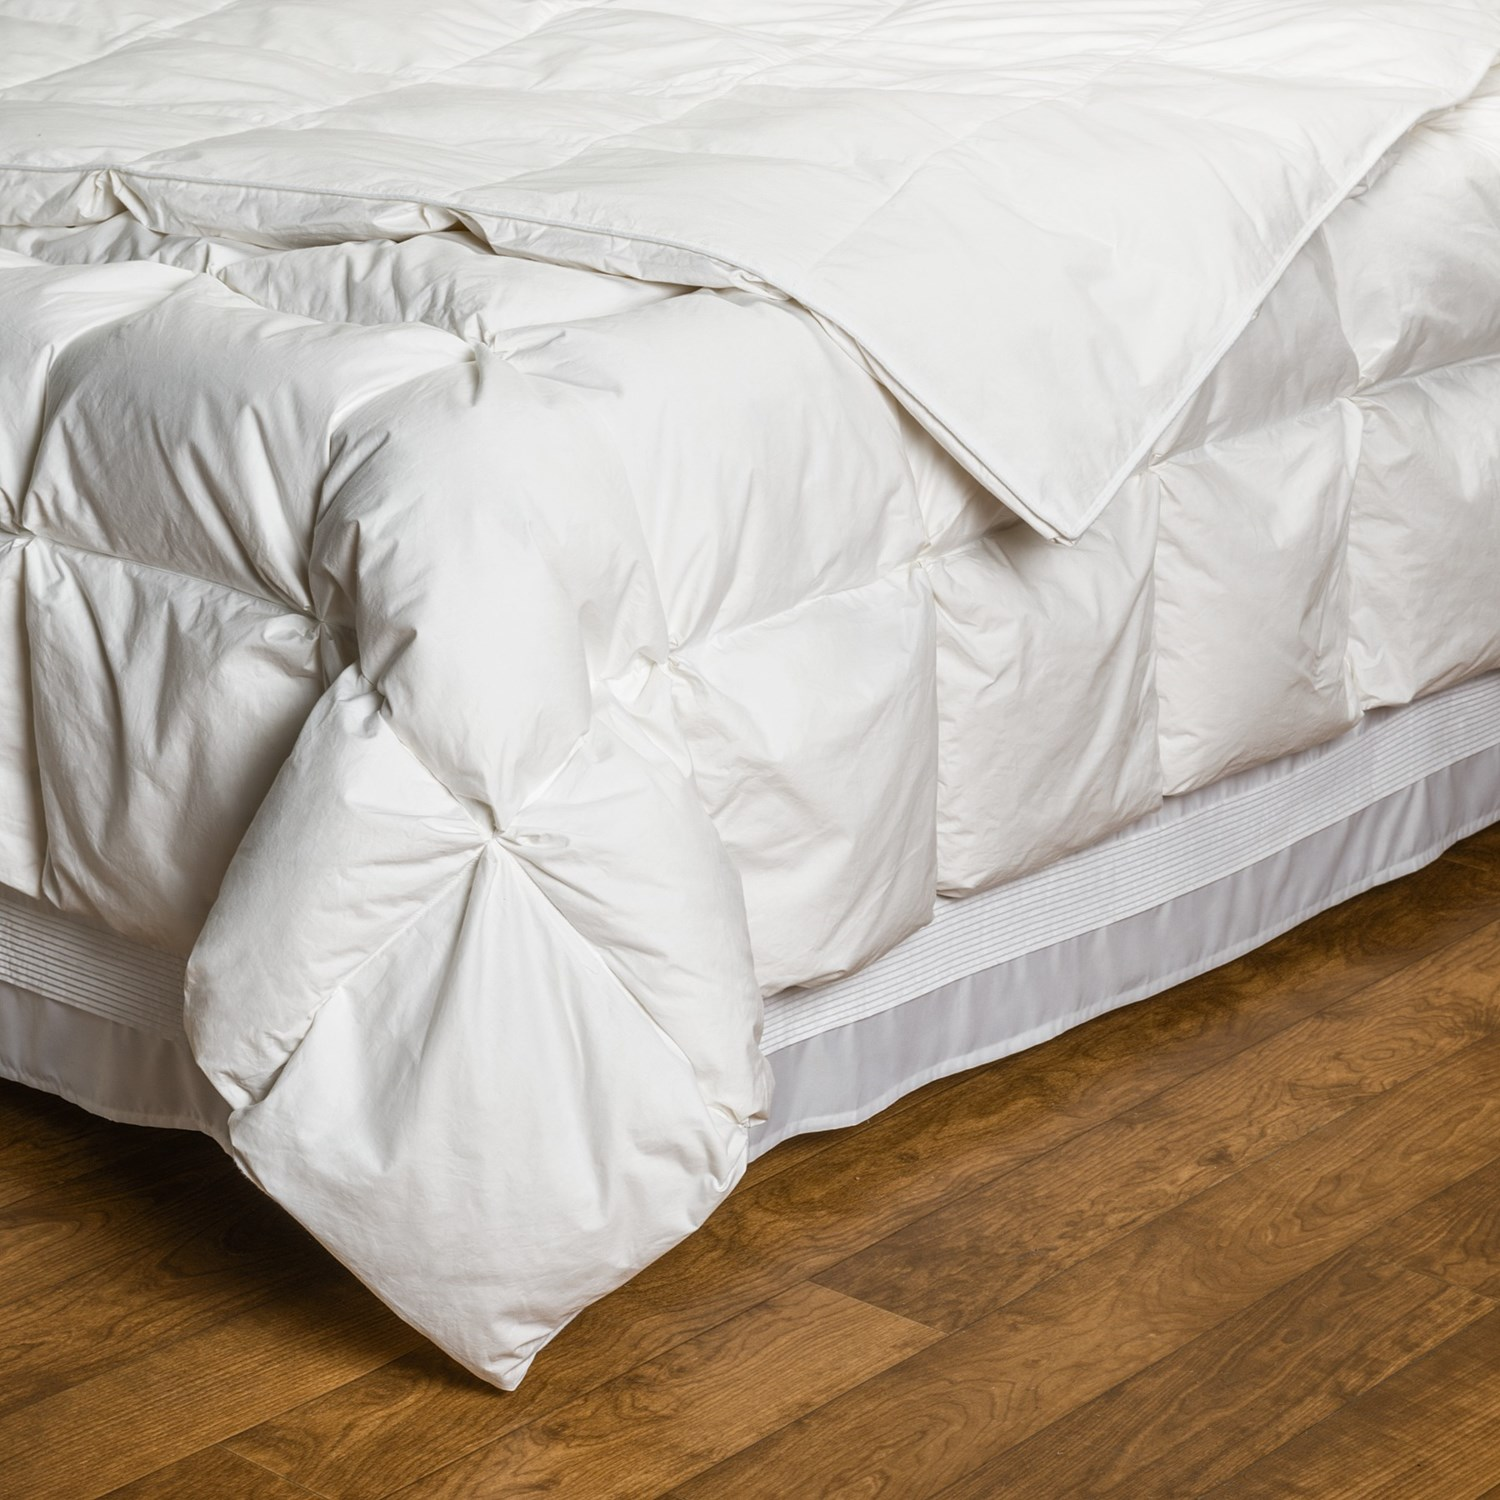 About Downessa White Goose Down Super King Superking Duvet